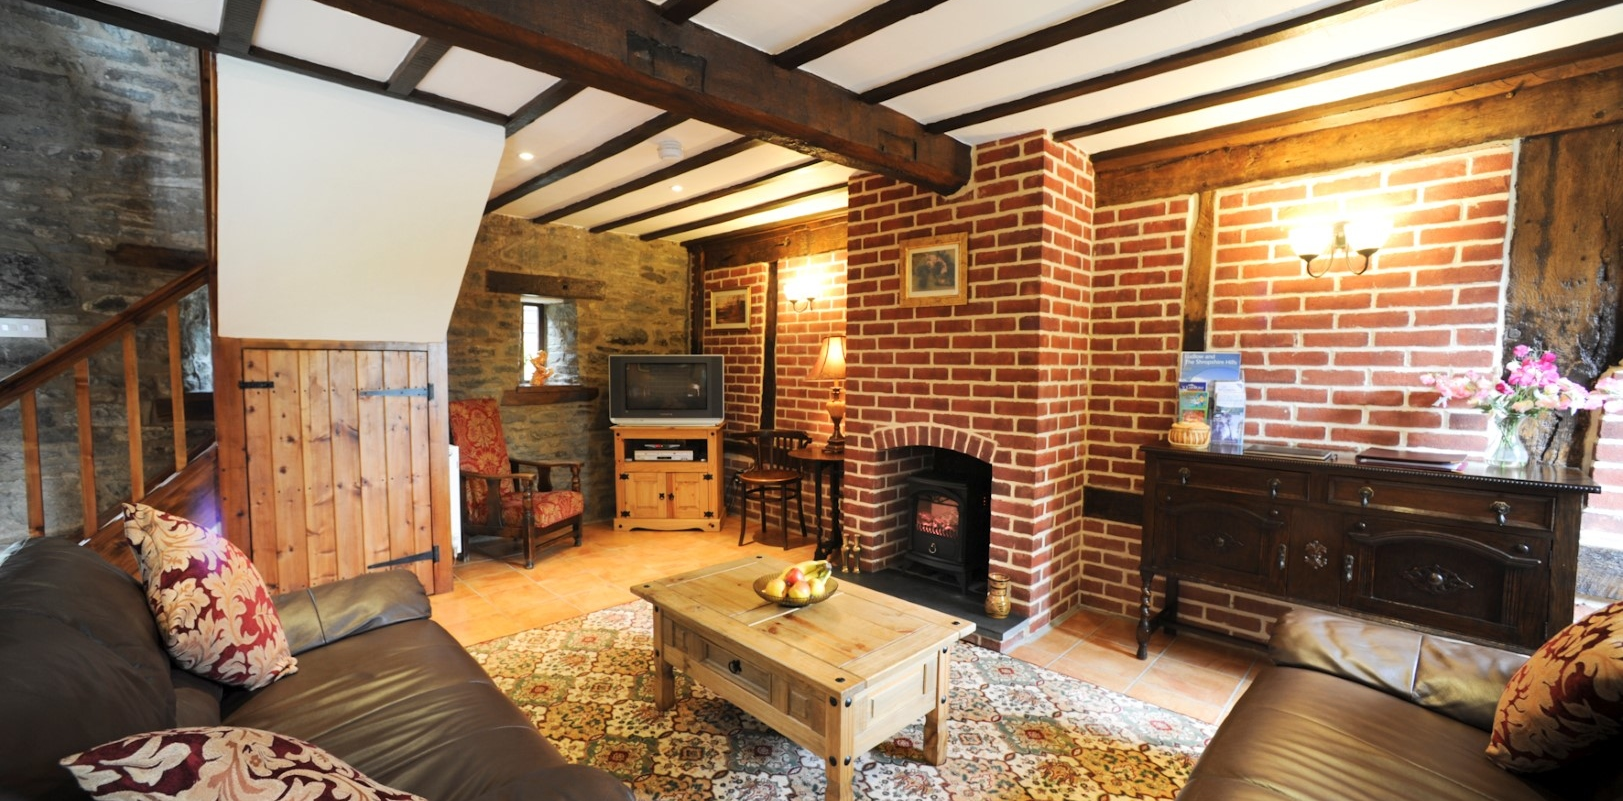 Self Catering Accommodation in Shropshire